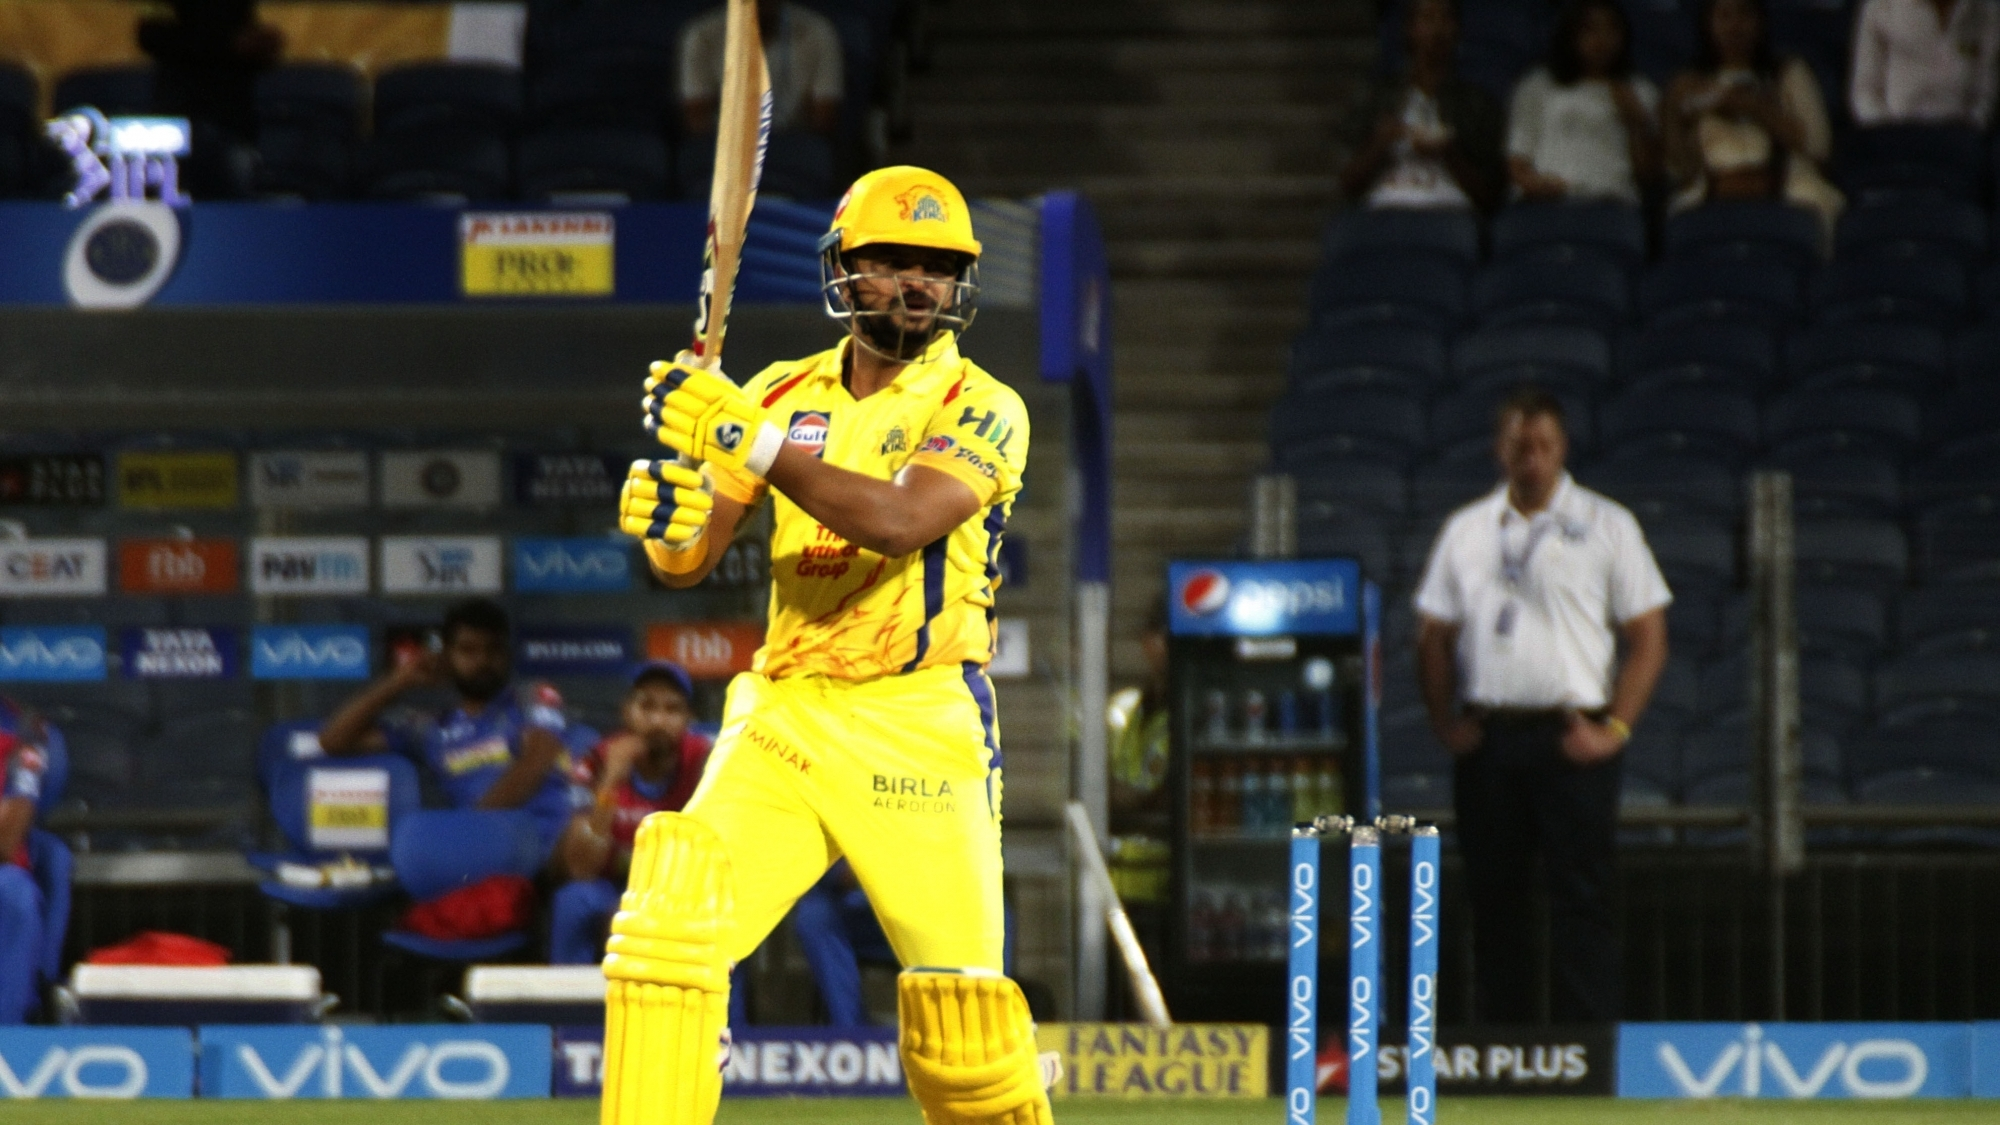 IPL 2018: CSK v MI - Suresh Raina's impressive 75* takes CSK to 169 against Mumbai Indians